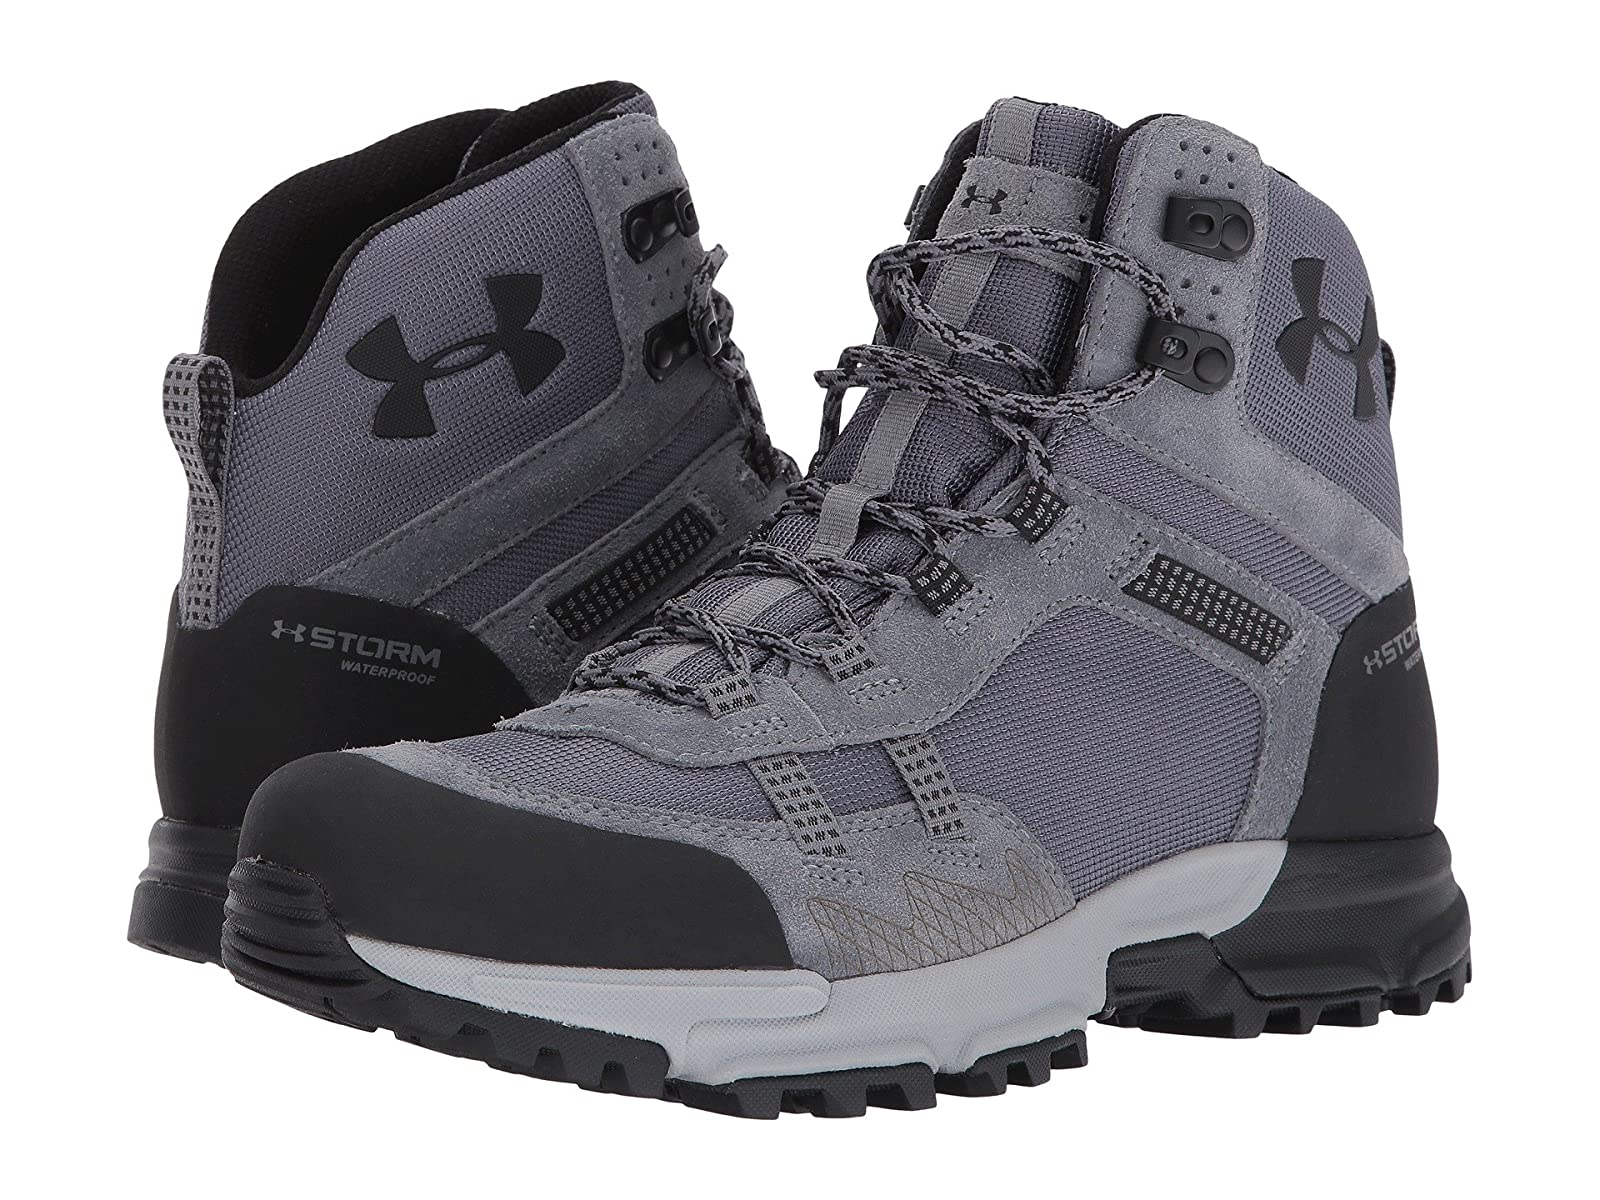 Under Armour UA Post Canyon Mid WaterproofCheap and distinctive eye-catching shoes